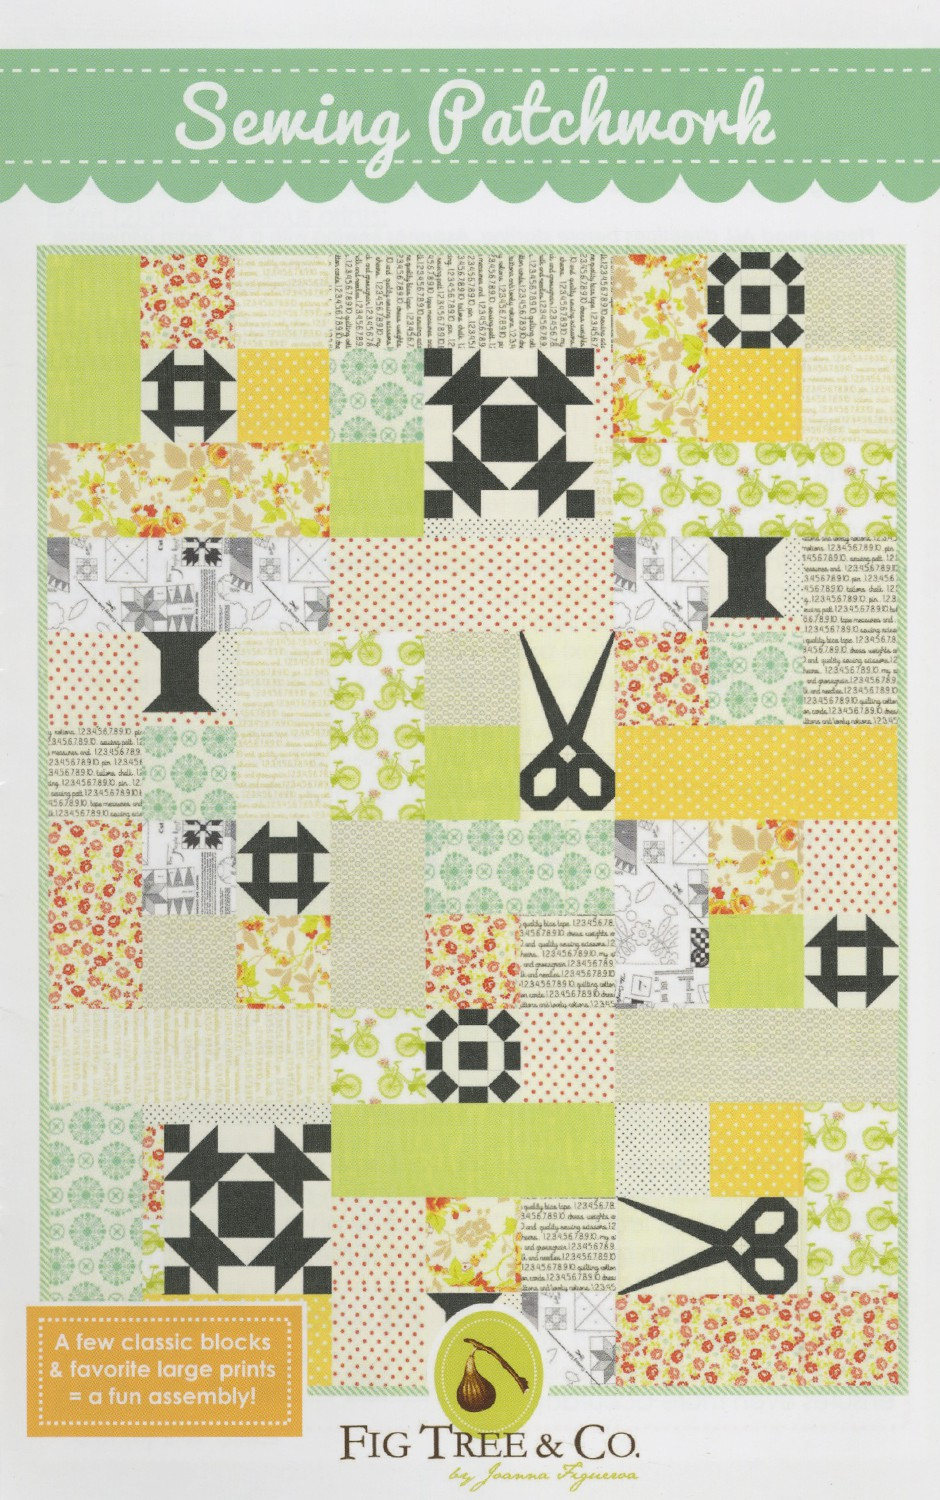 Sewing Patchwork Quilt Pattern